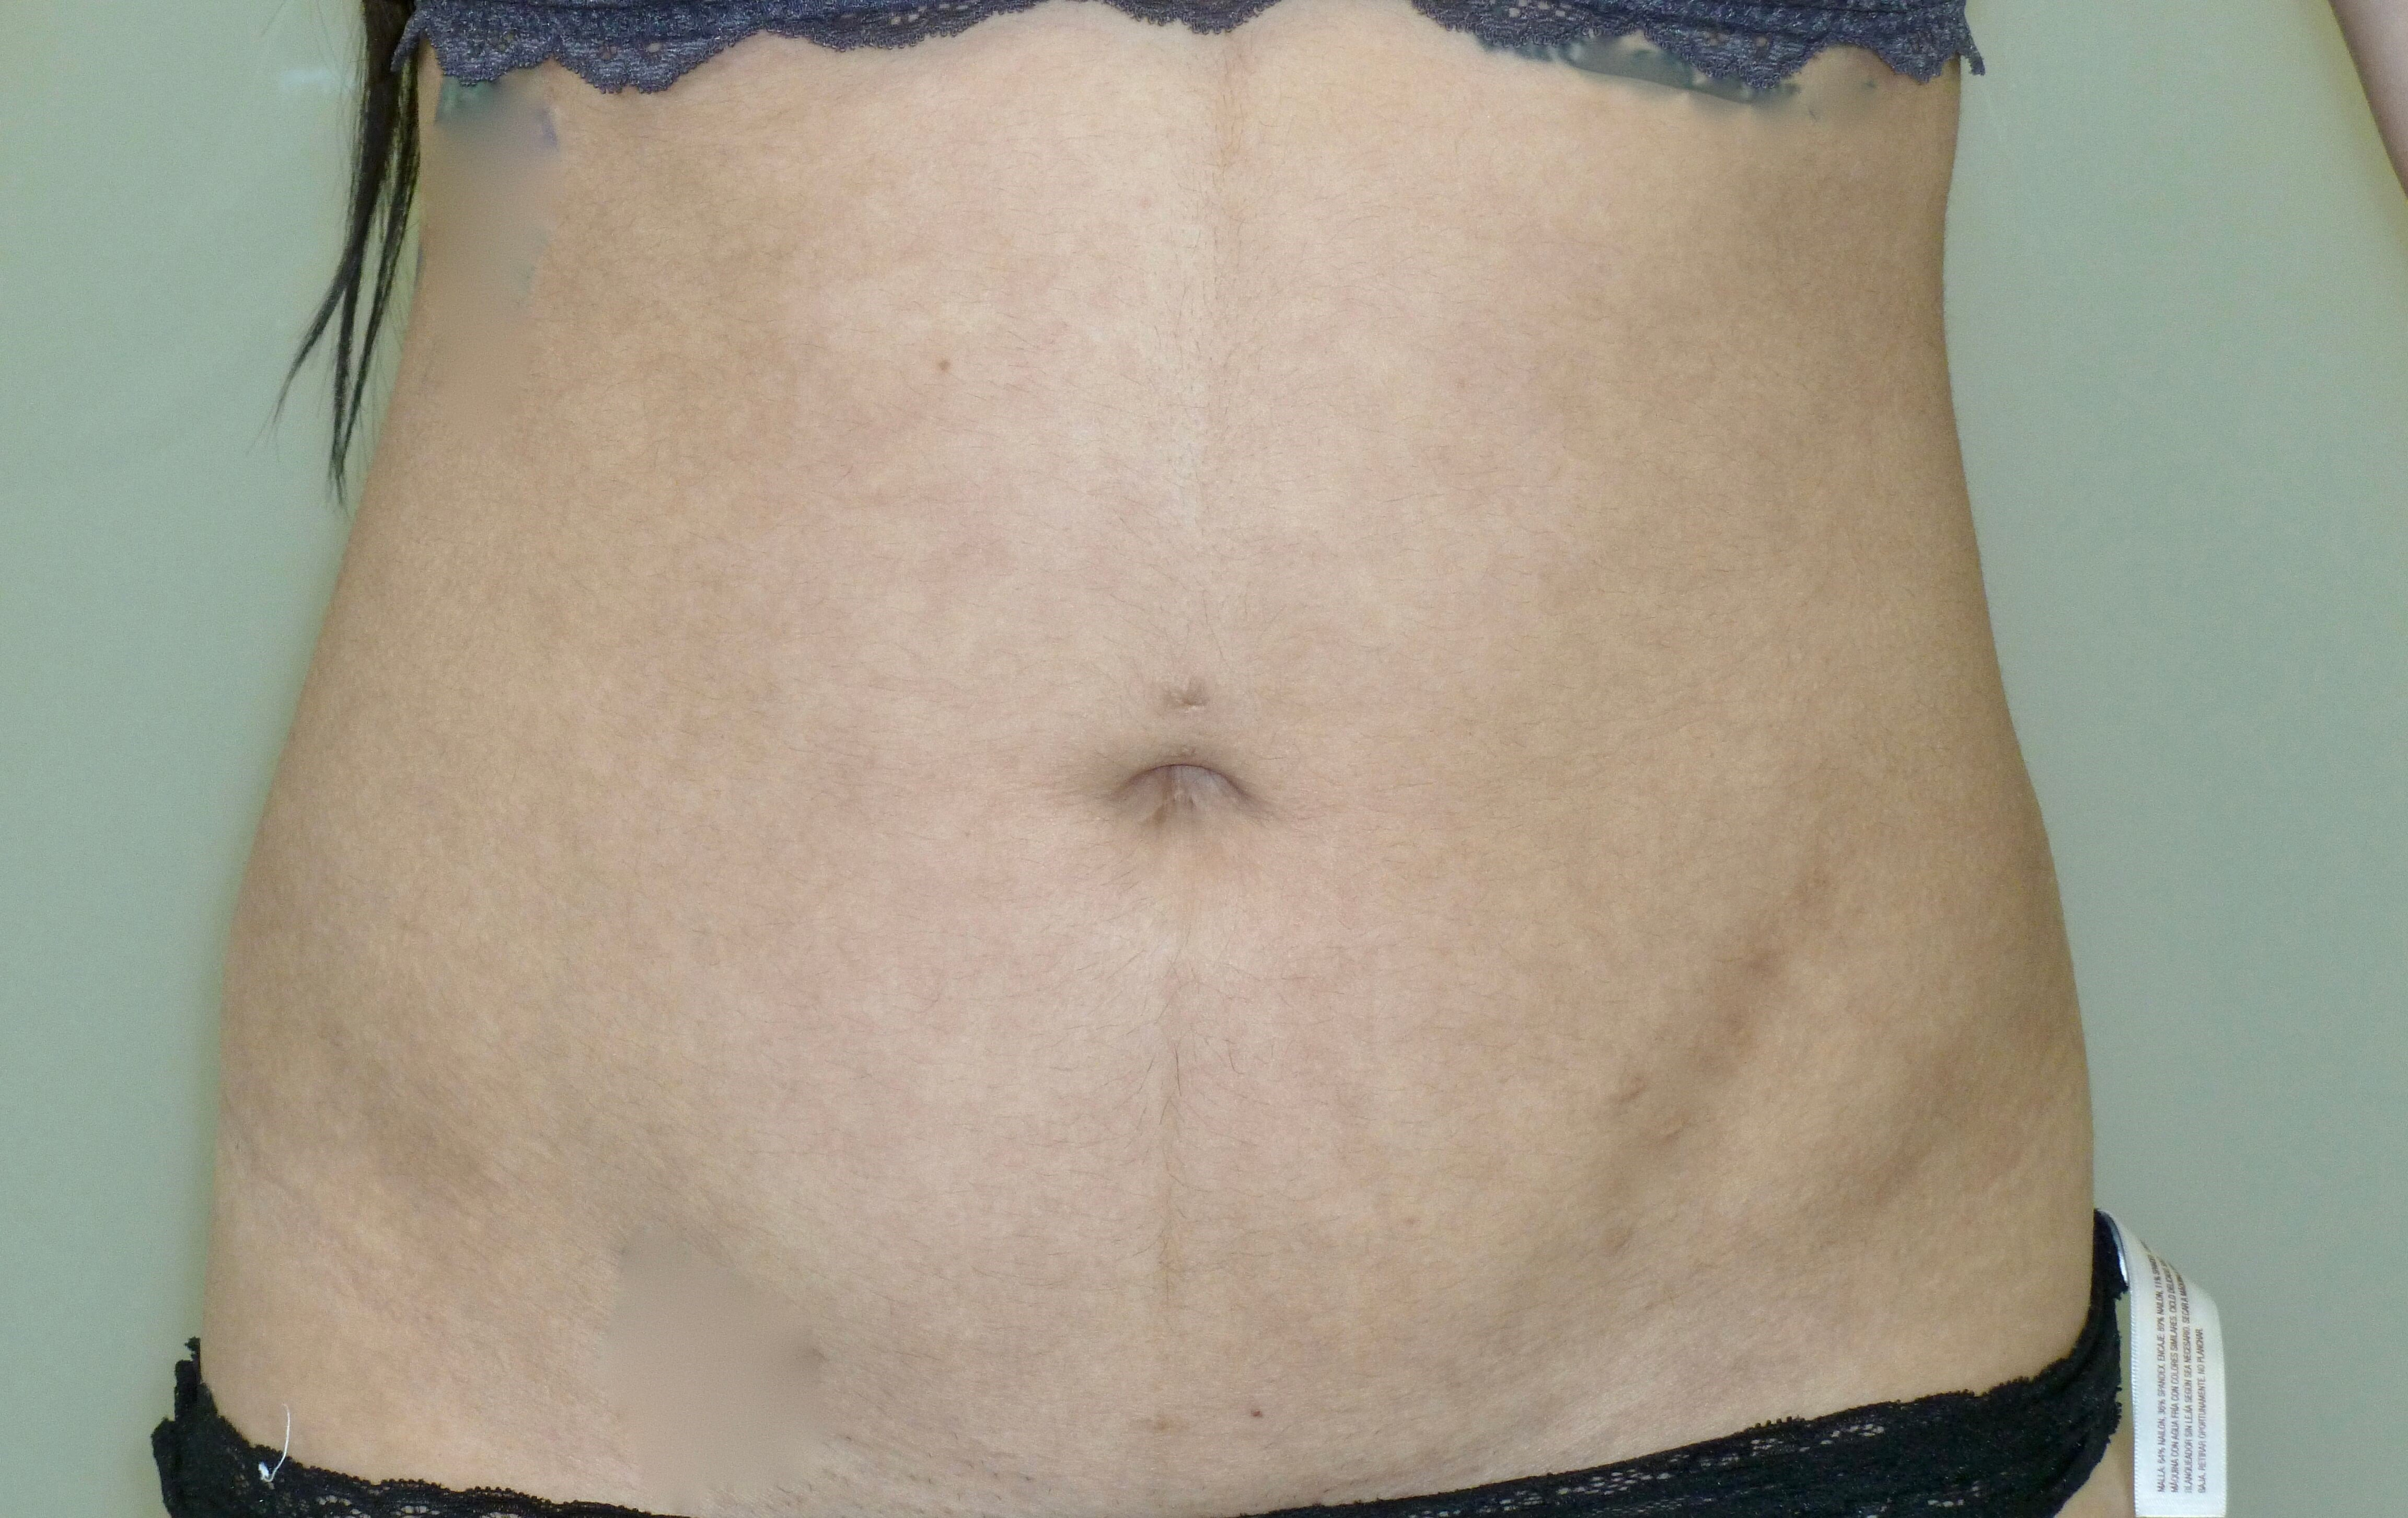 Liposuction Abdomen & Hips After